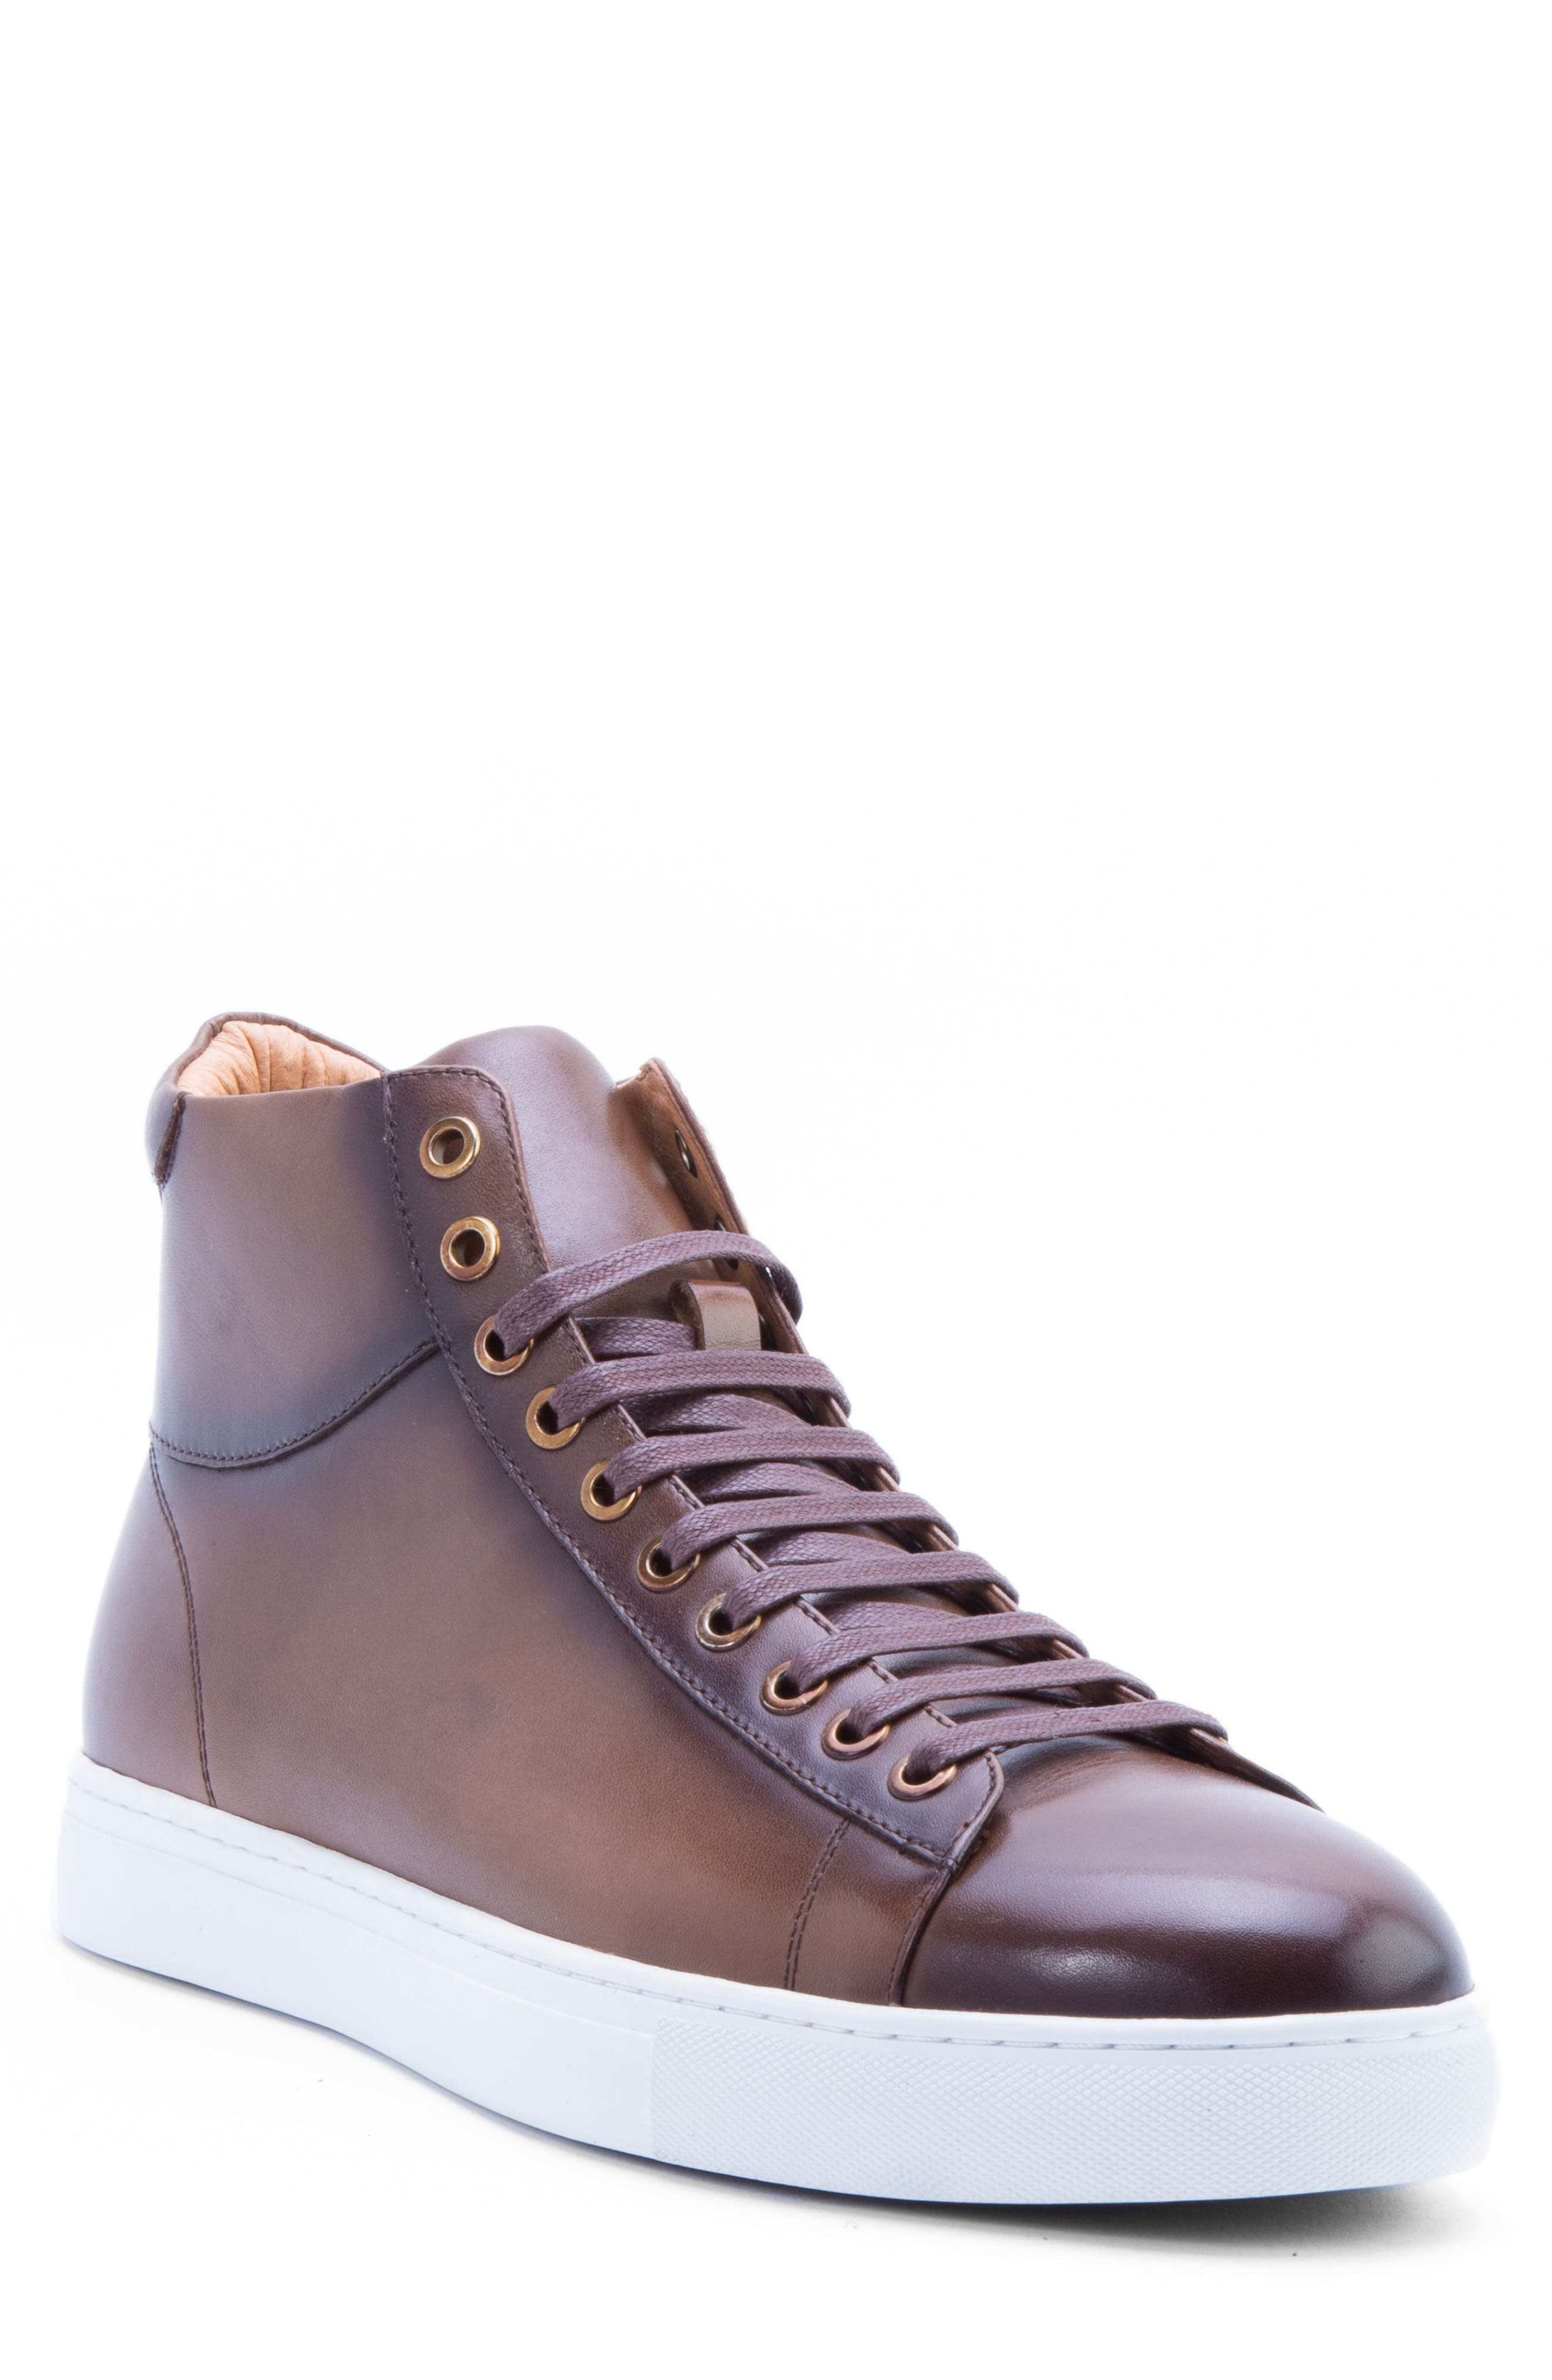 Spinback High Top Sneaker,                             Main thumbnail 1, color,                             200